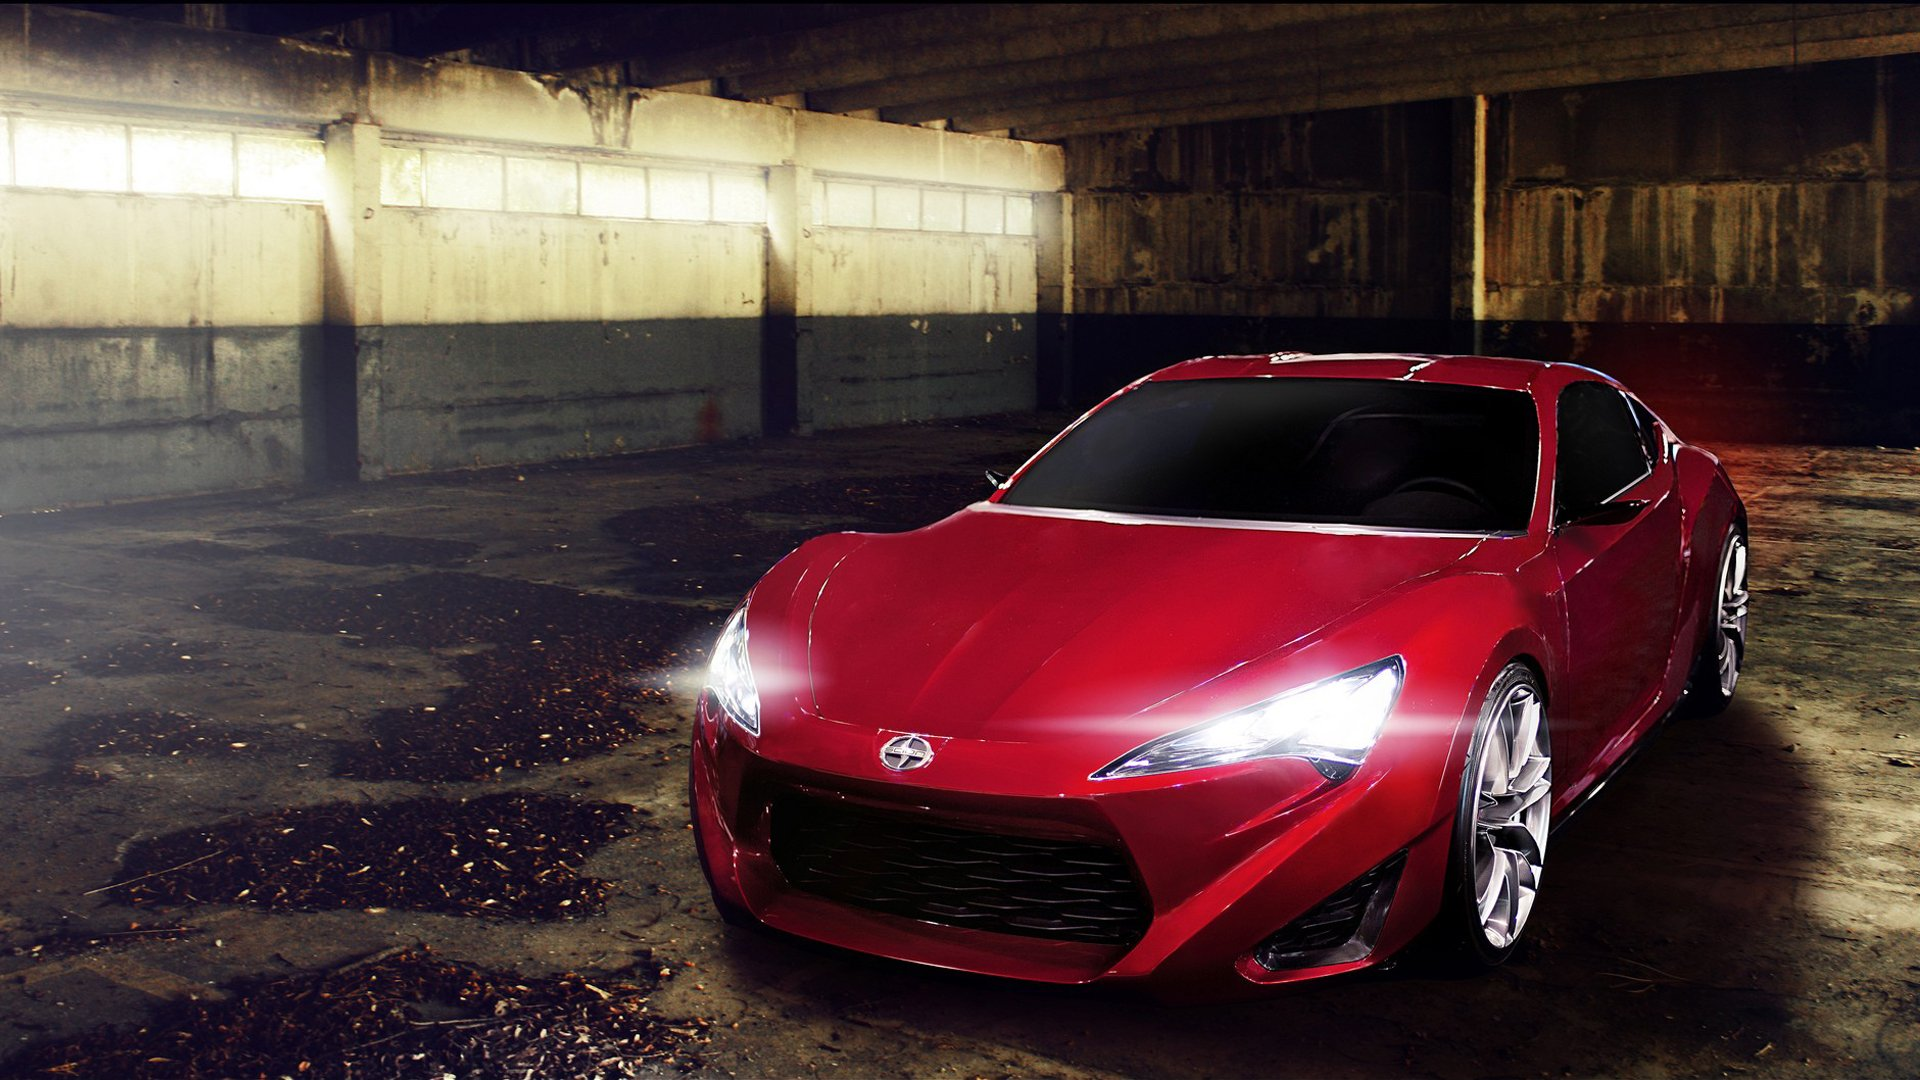 Car Wallpapers Backgrounds Hd: 9 Fantastic HD Scion FRS Car Wallpapers